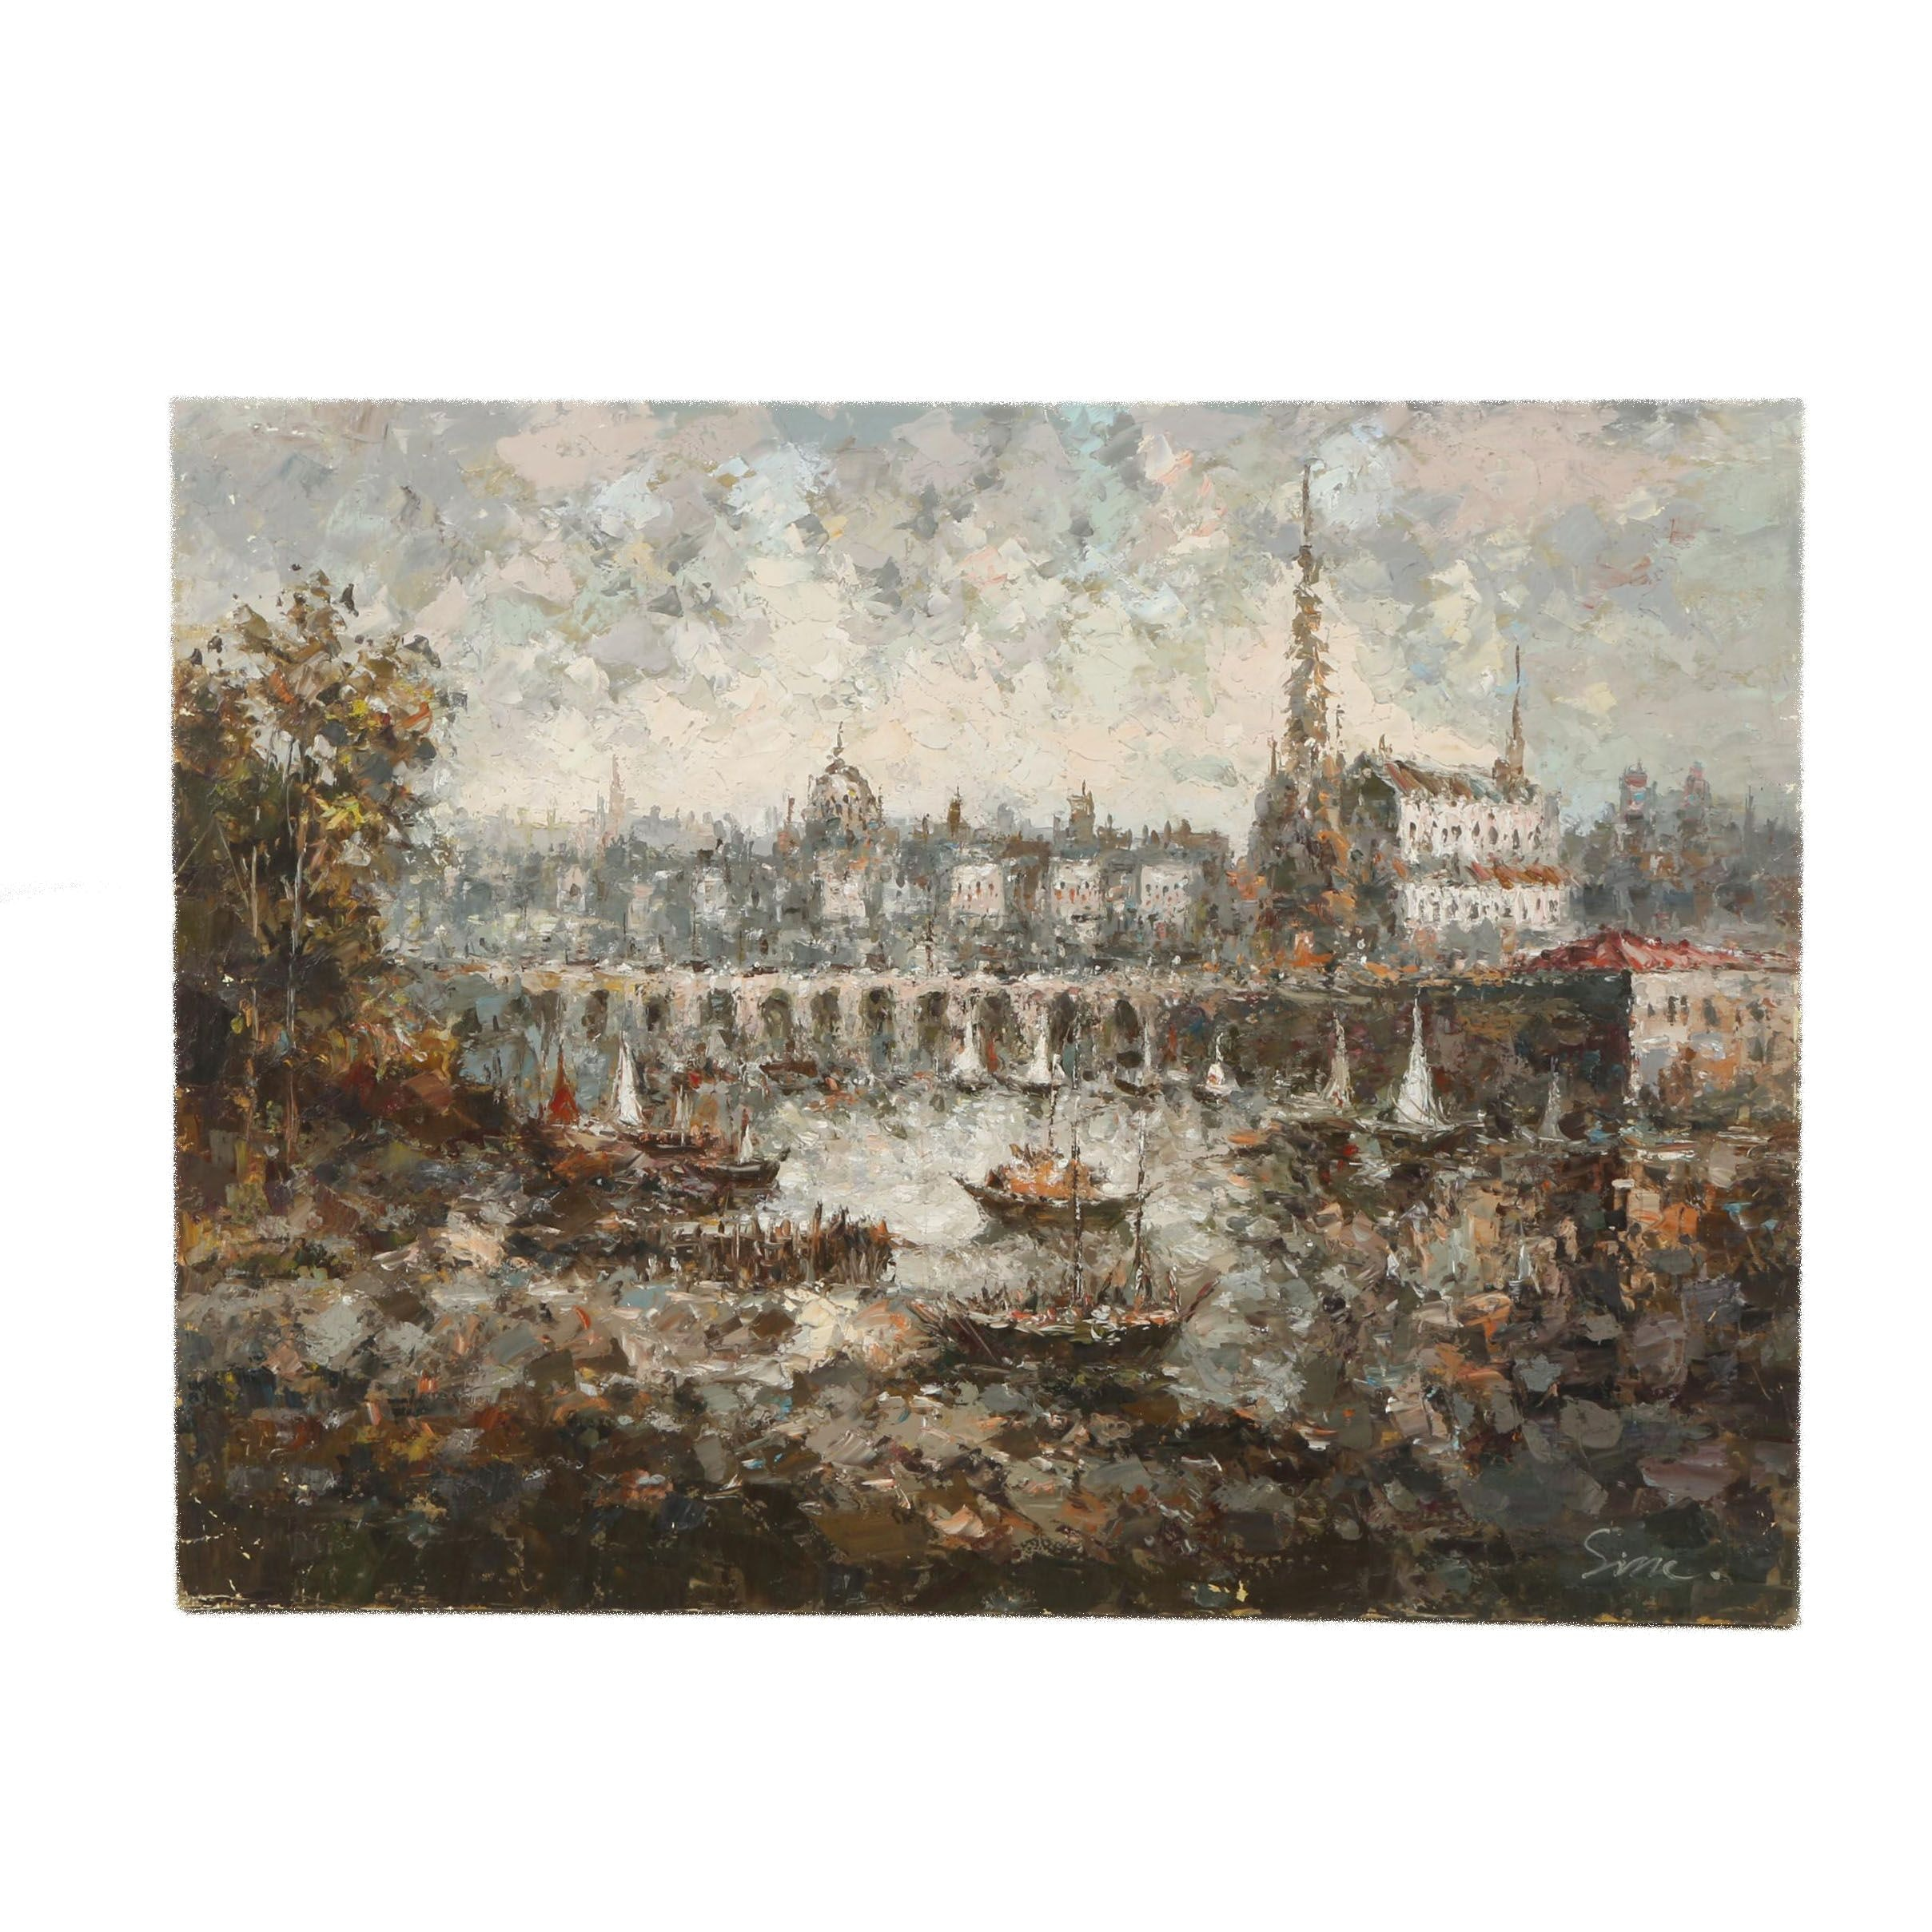 Sine Oil Painting on Canvas of a Harbor Scene